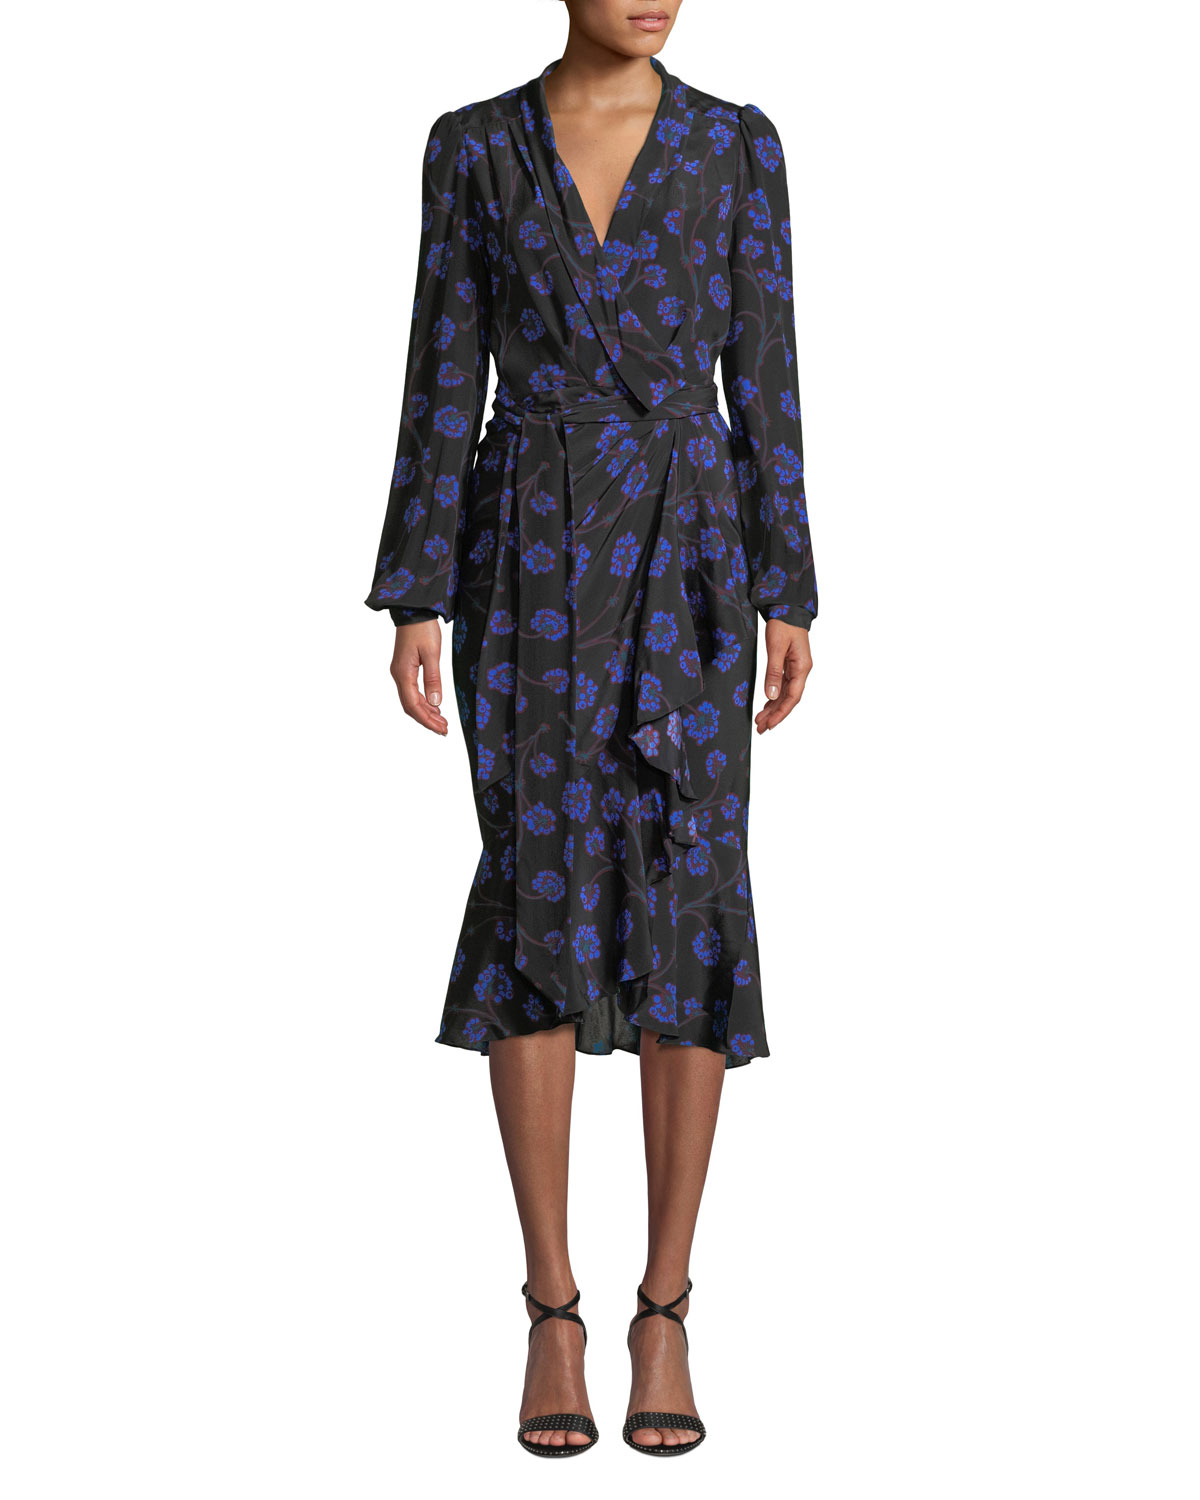 7cce509822 Diane von Furstenberg Carla Floral-Print Long-Sleeve Wrap Dress ...